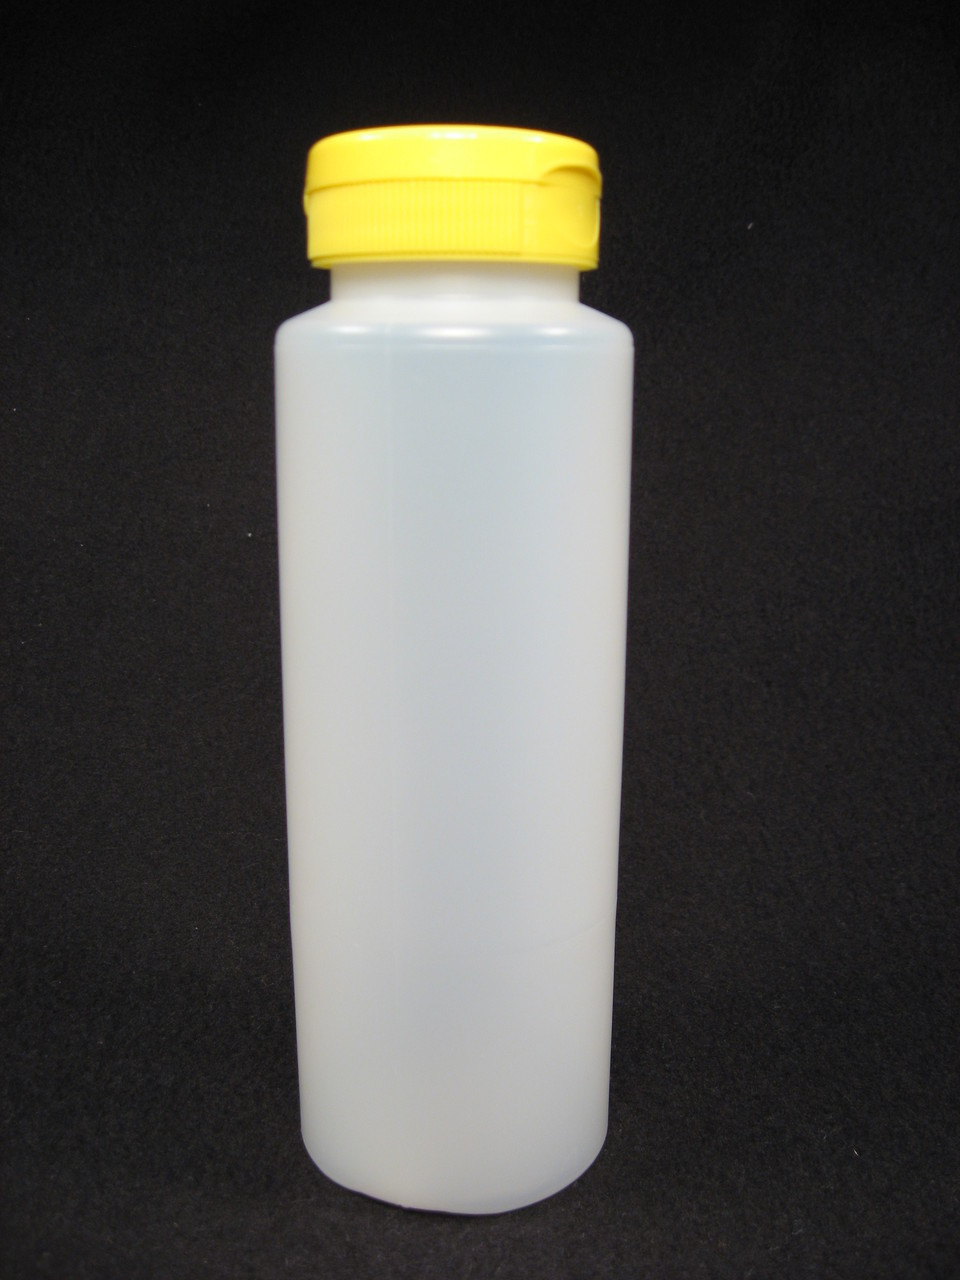 12 oz. Cylinder honey bottles - case of 350 with yellow flip top lids